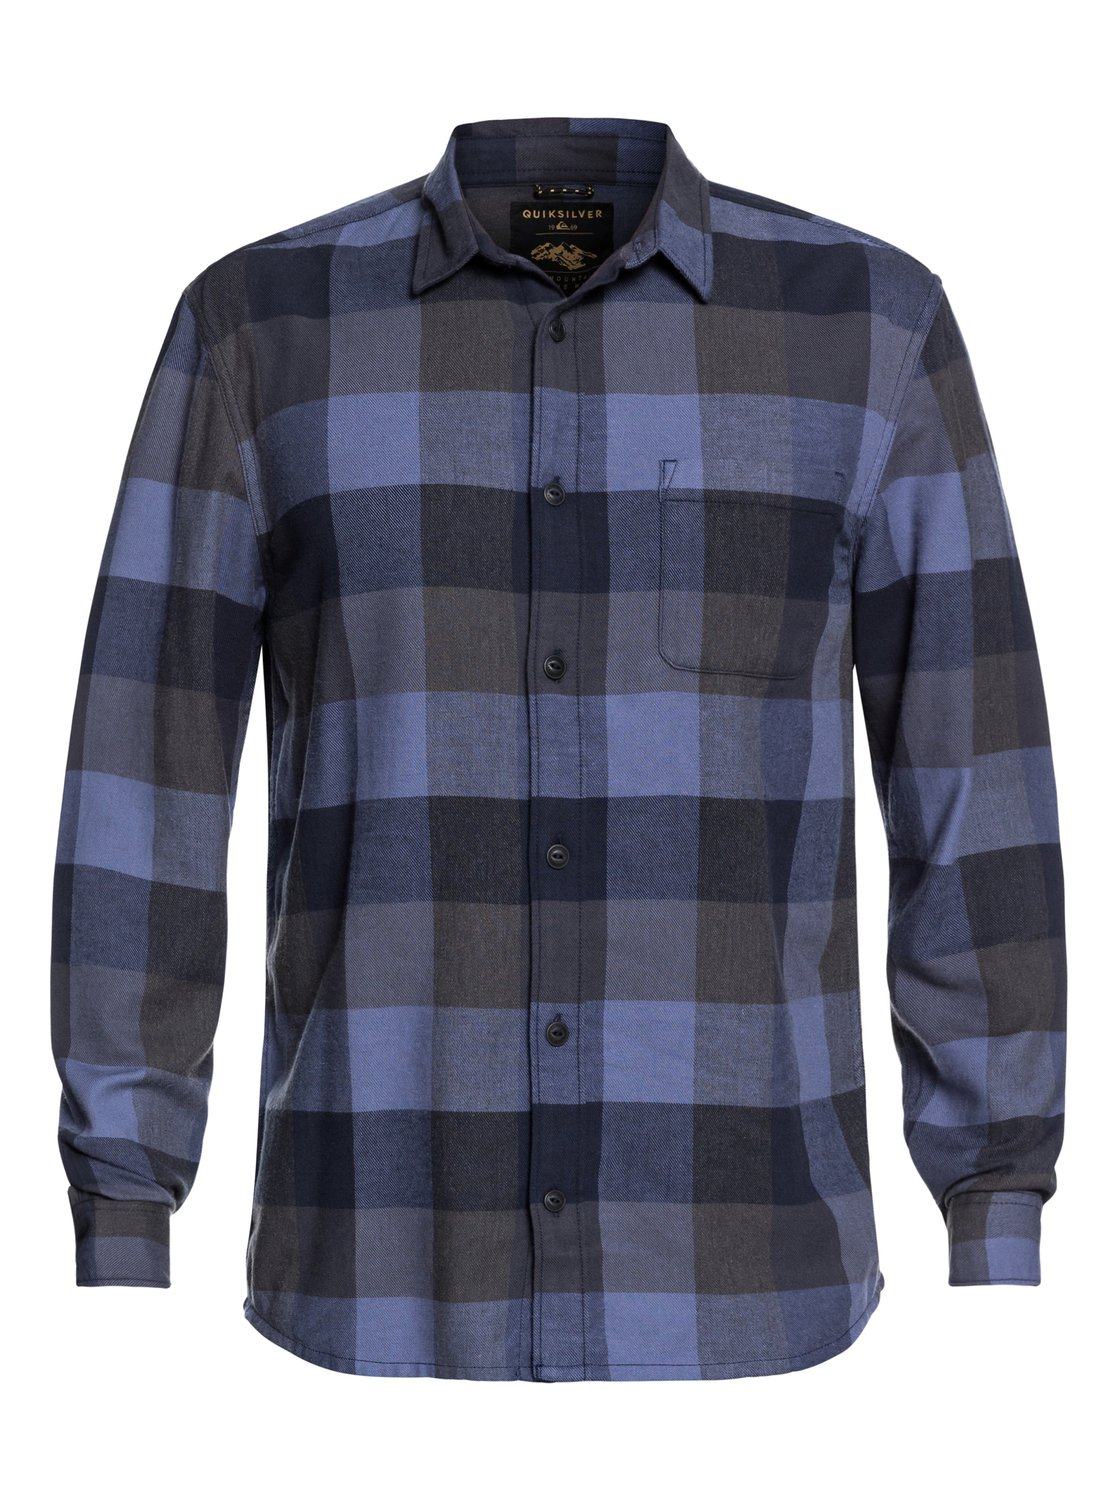 62d537f2c0ae 4 Stretch Flannel - Water-Resistant Long Sleeve Shirt for Men Blue  EQYWT03693 Quiksilver